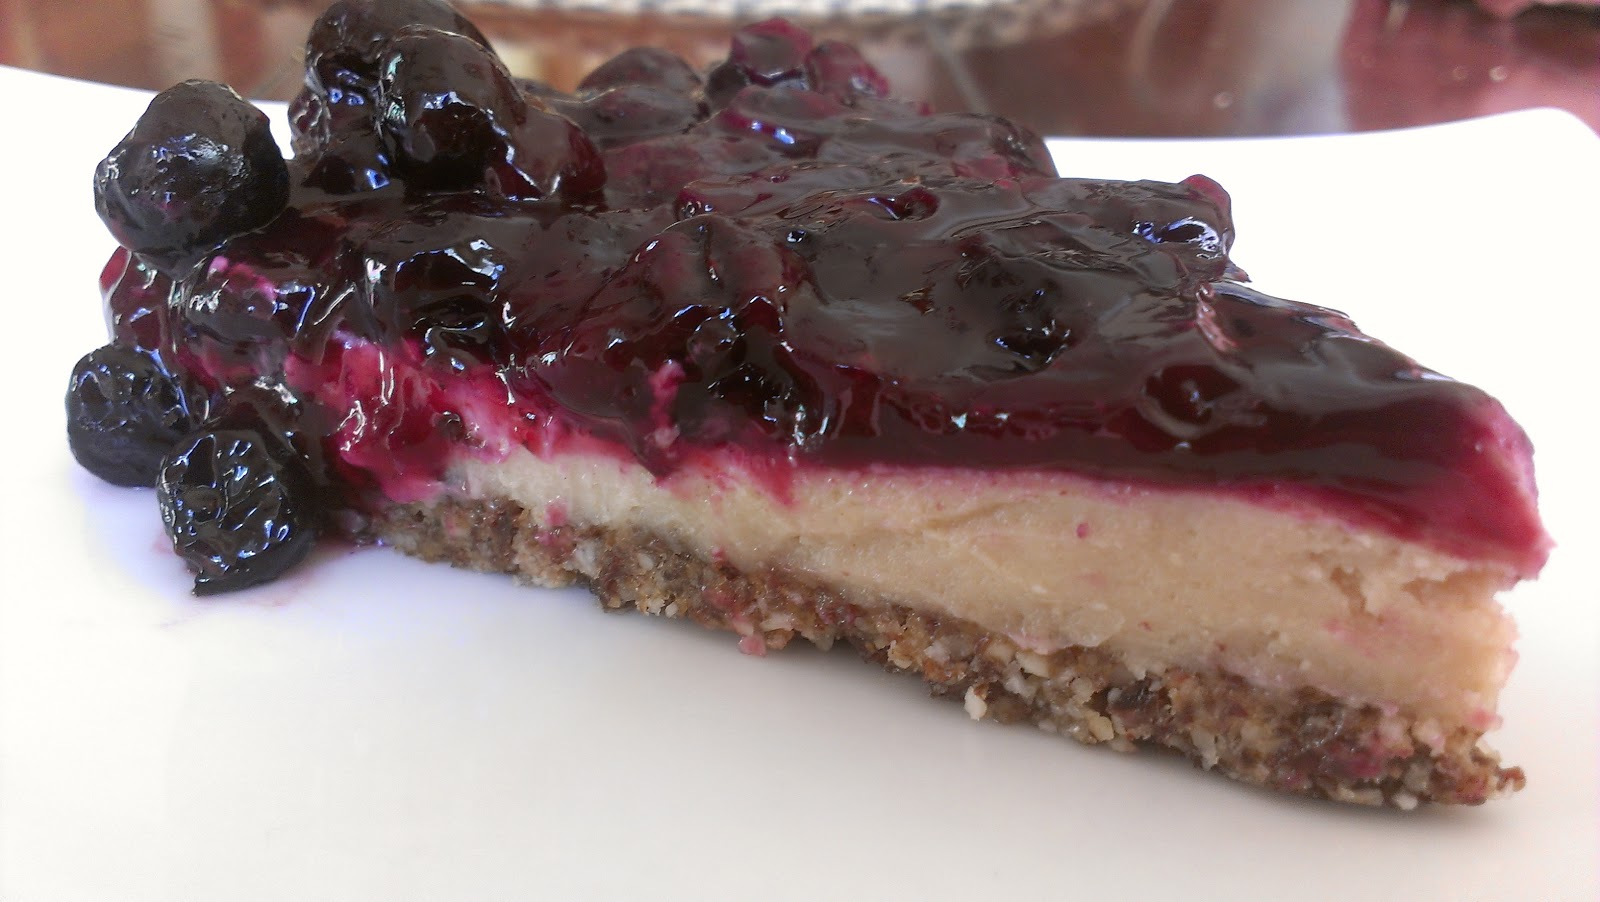 Vegan Cheesecake with Blueberry Topping - Mostly Raw! | Care2 Share